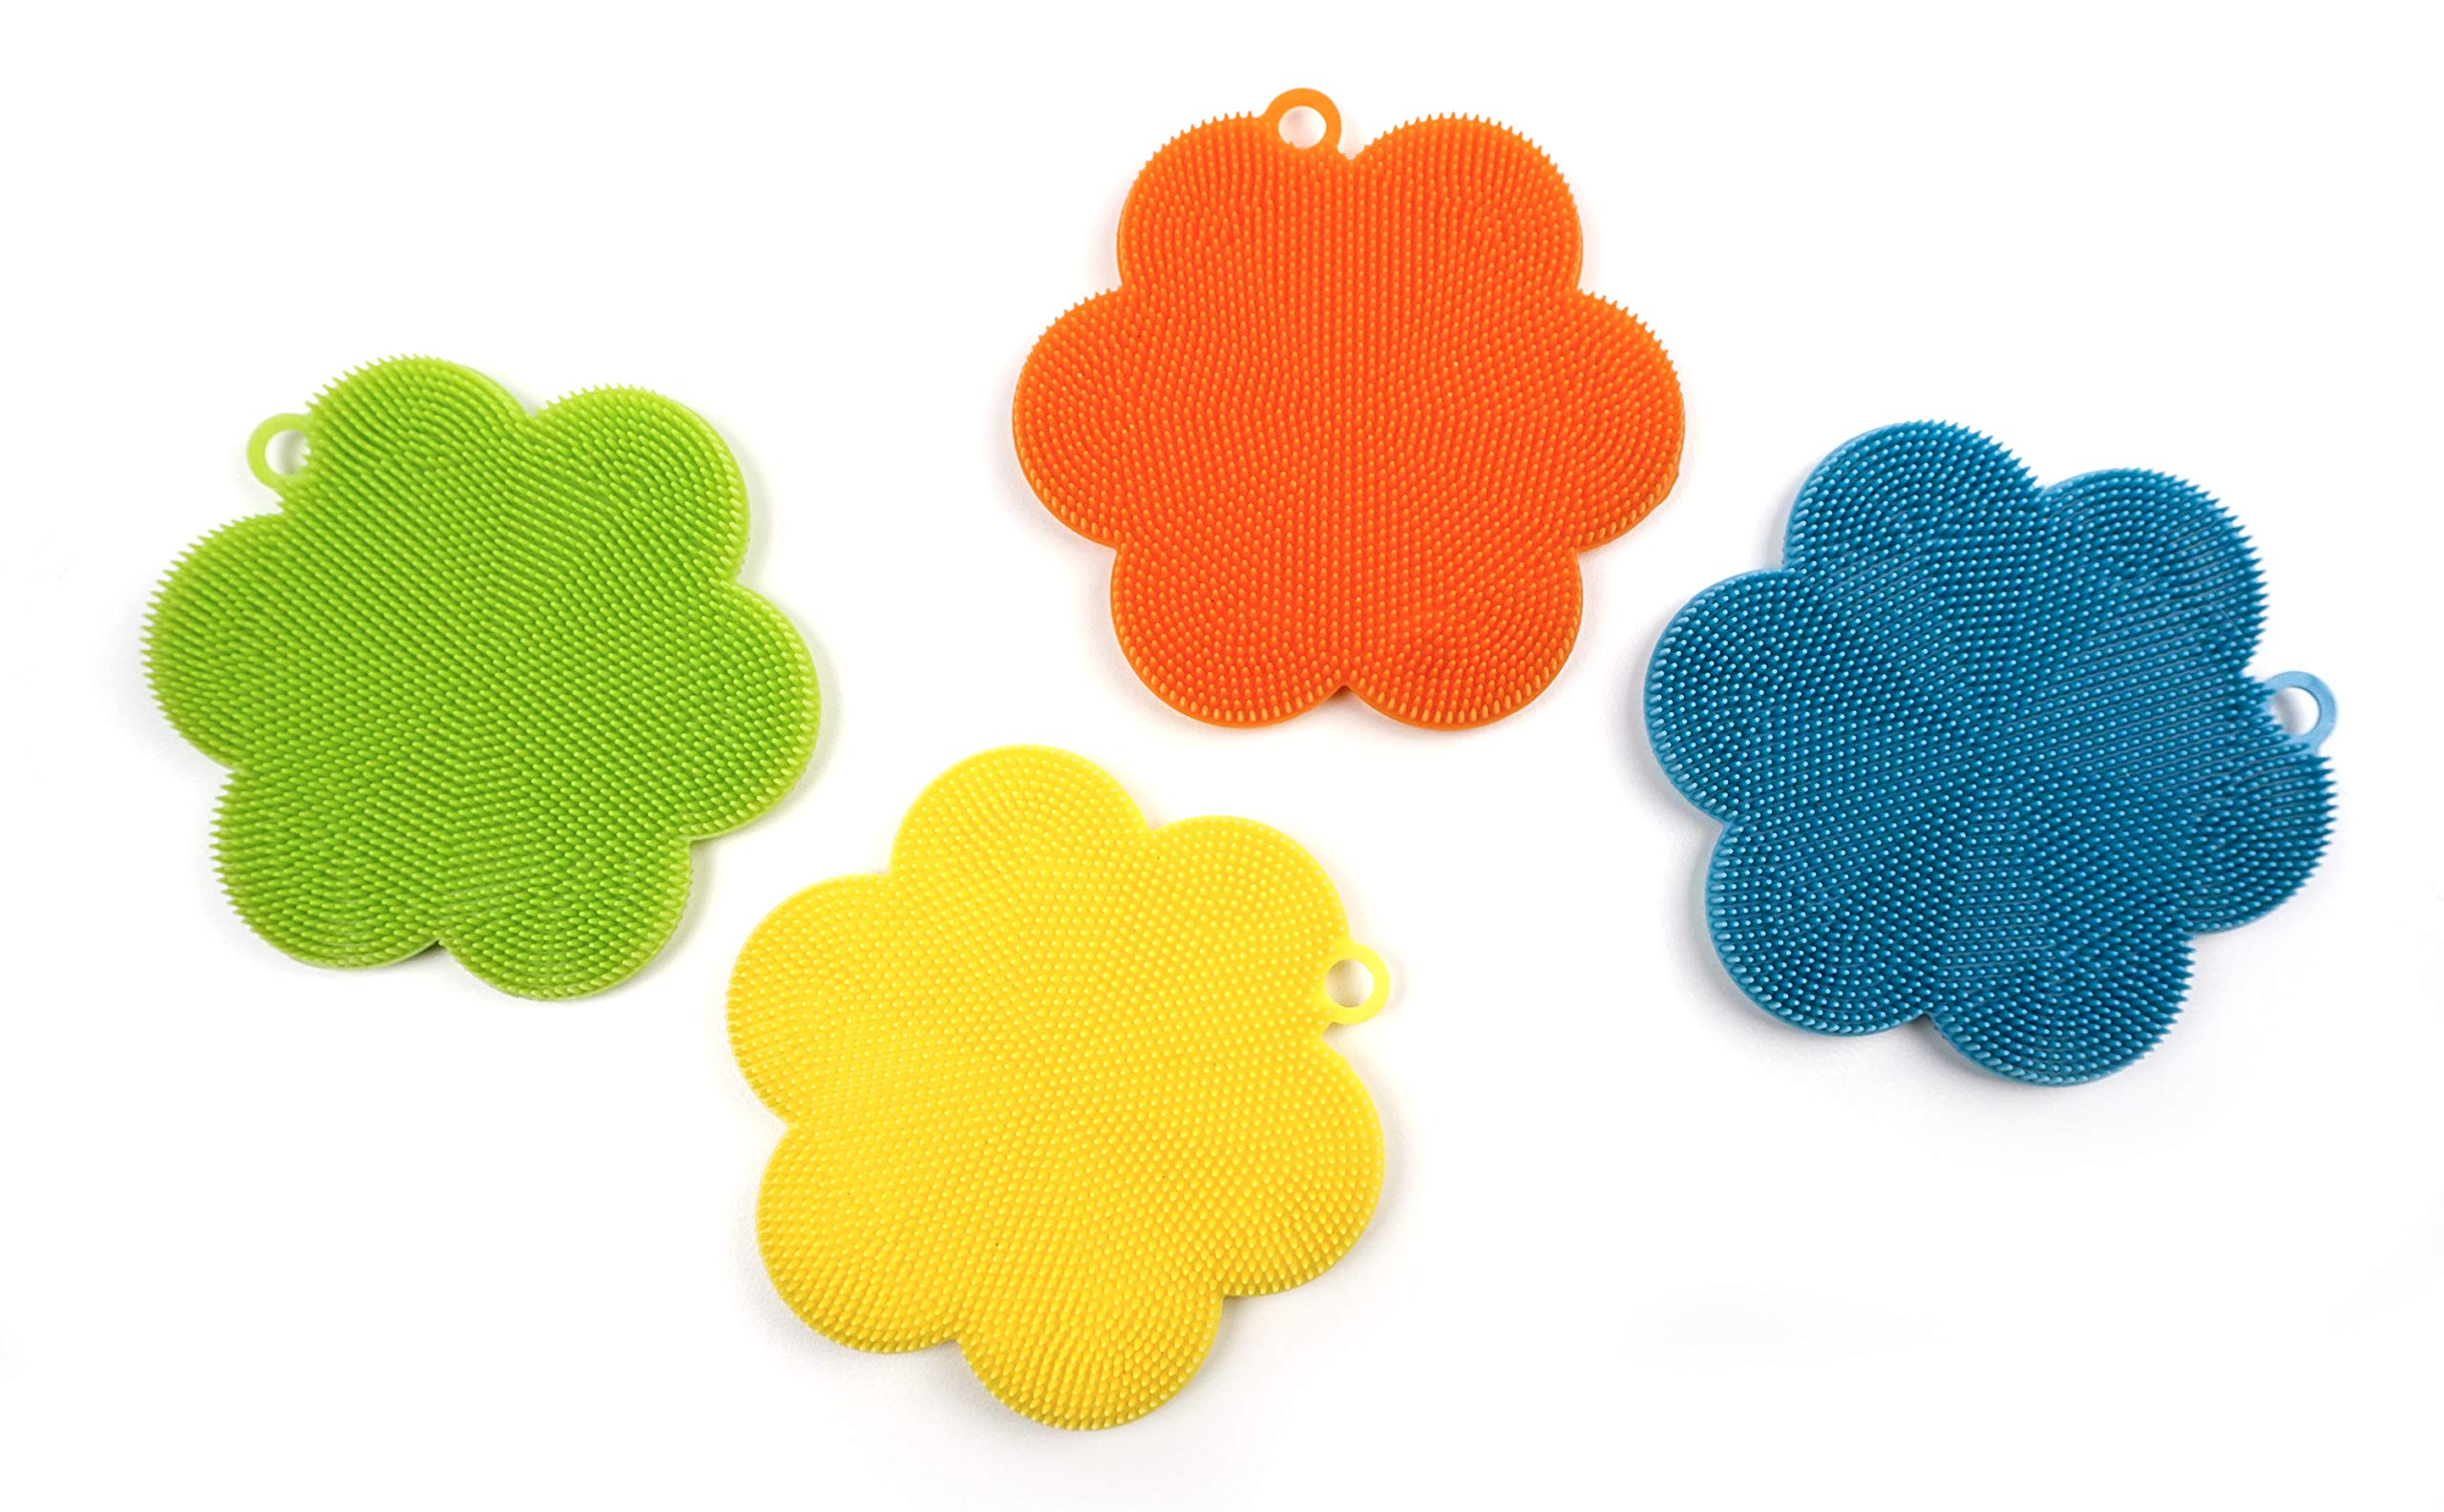 RSVP Silicone Soft Scrubbers, Set of 4